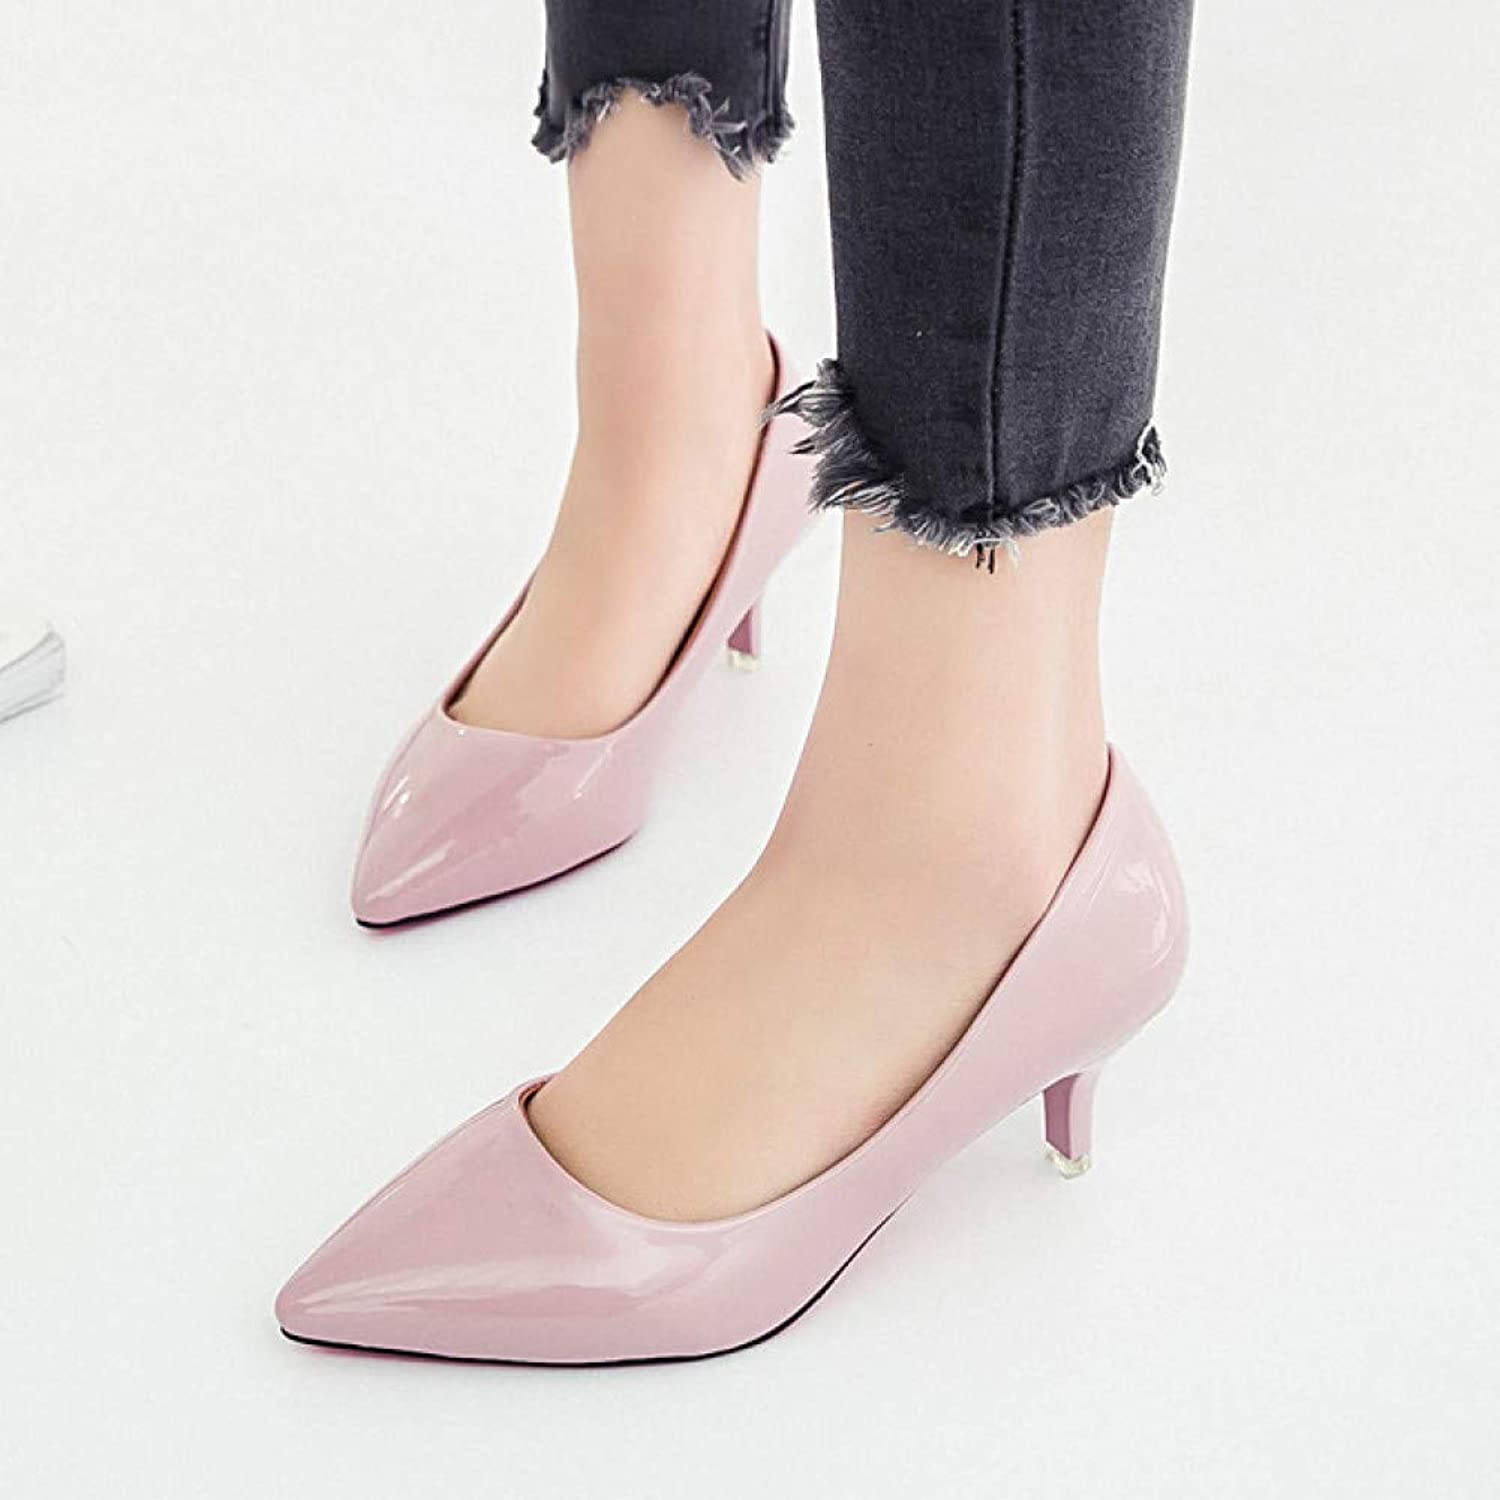 UKJSNHH igh Heels Plus Size 34-42 Women shoes Medium Heels Pumps Pointed Toe Dress shoes Woman Patent Leather Boat shoes Ladies